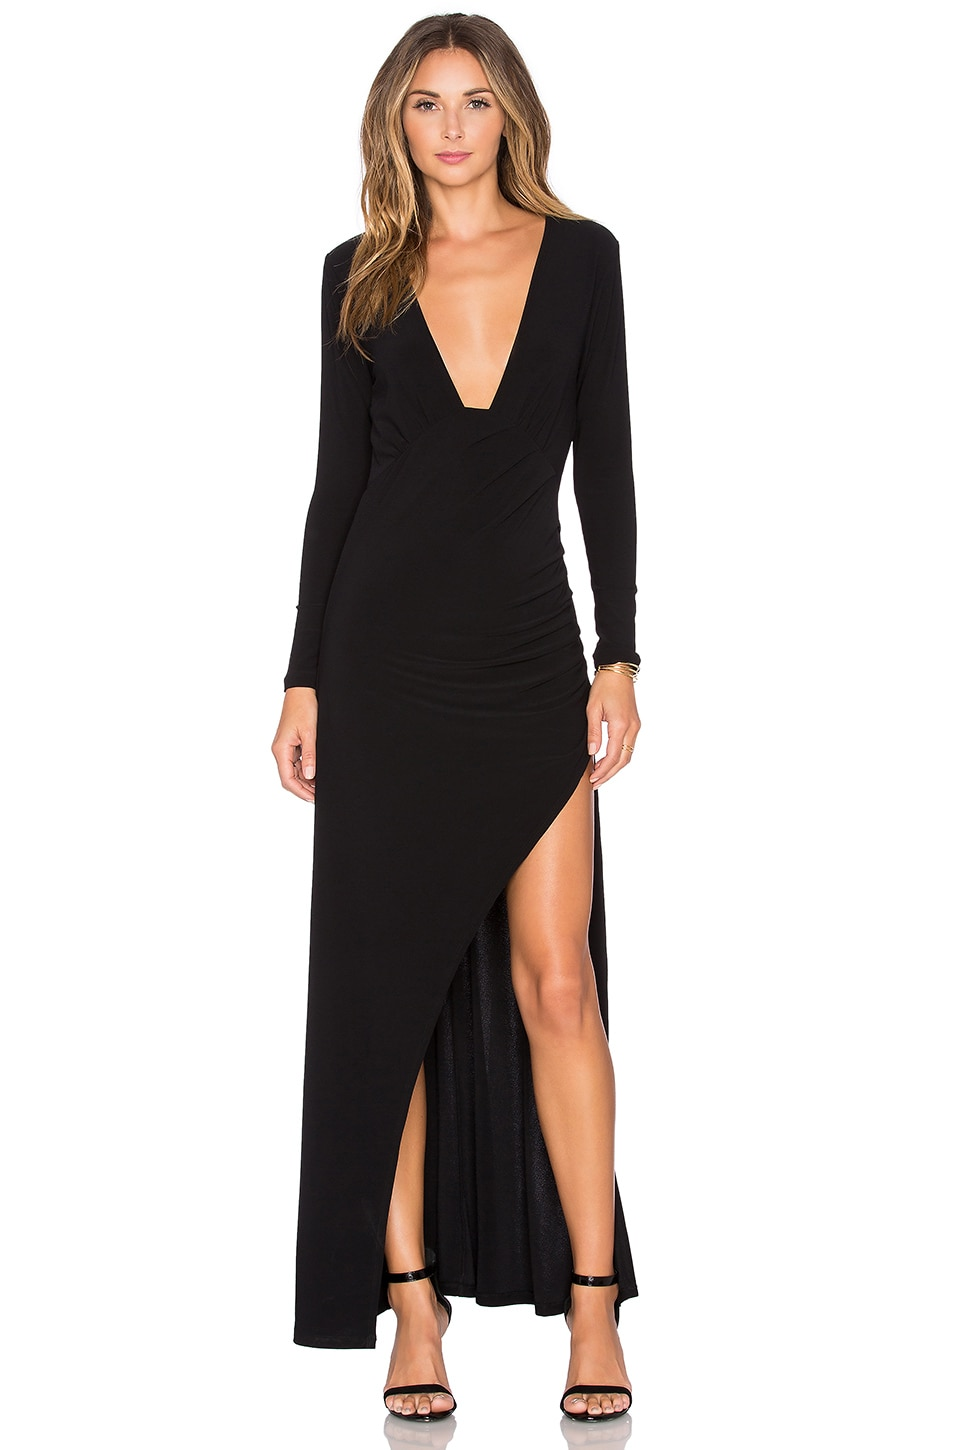 NBD x REVOLVE Own The Night Maxi Dress in Black